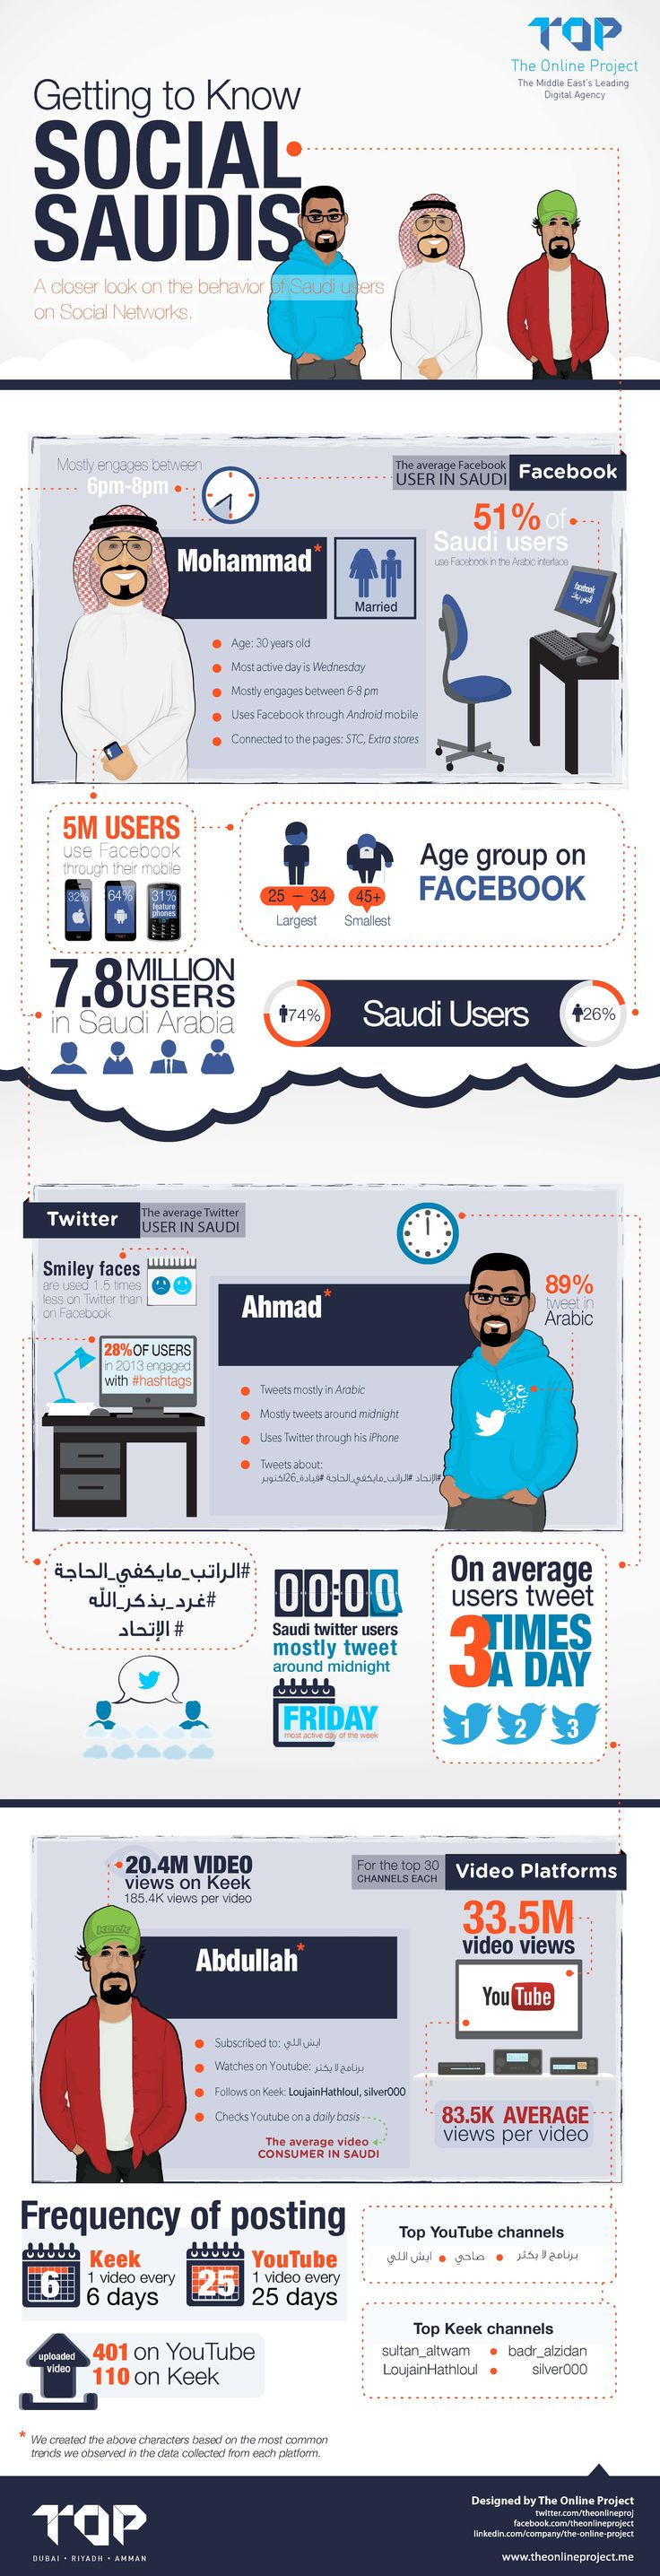 Facebook, Twitter And YouTube - How Are Saudis Using Social Media? [INFOGRAPHIC]